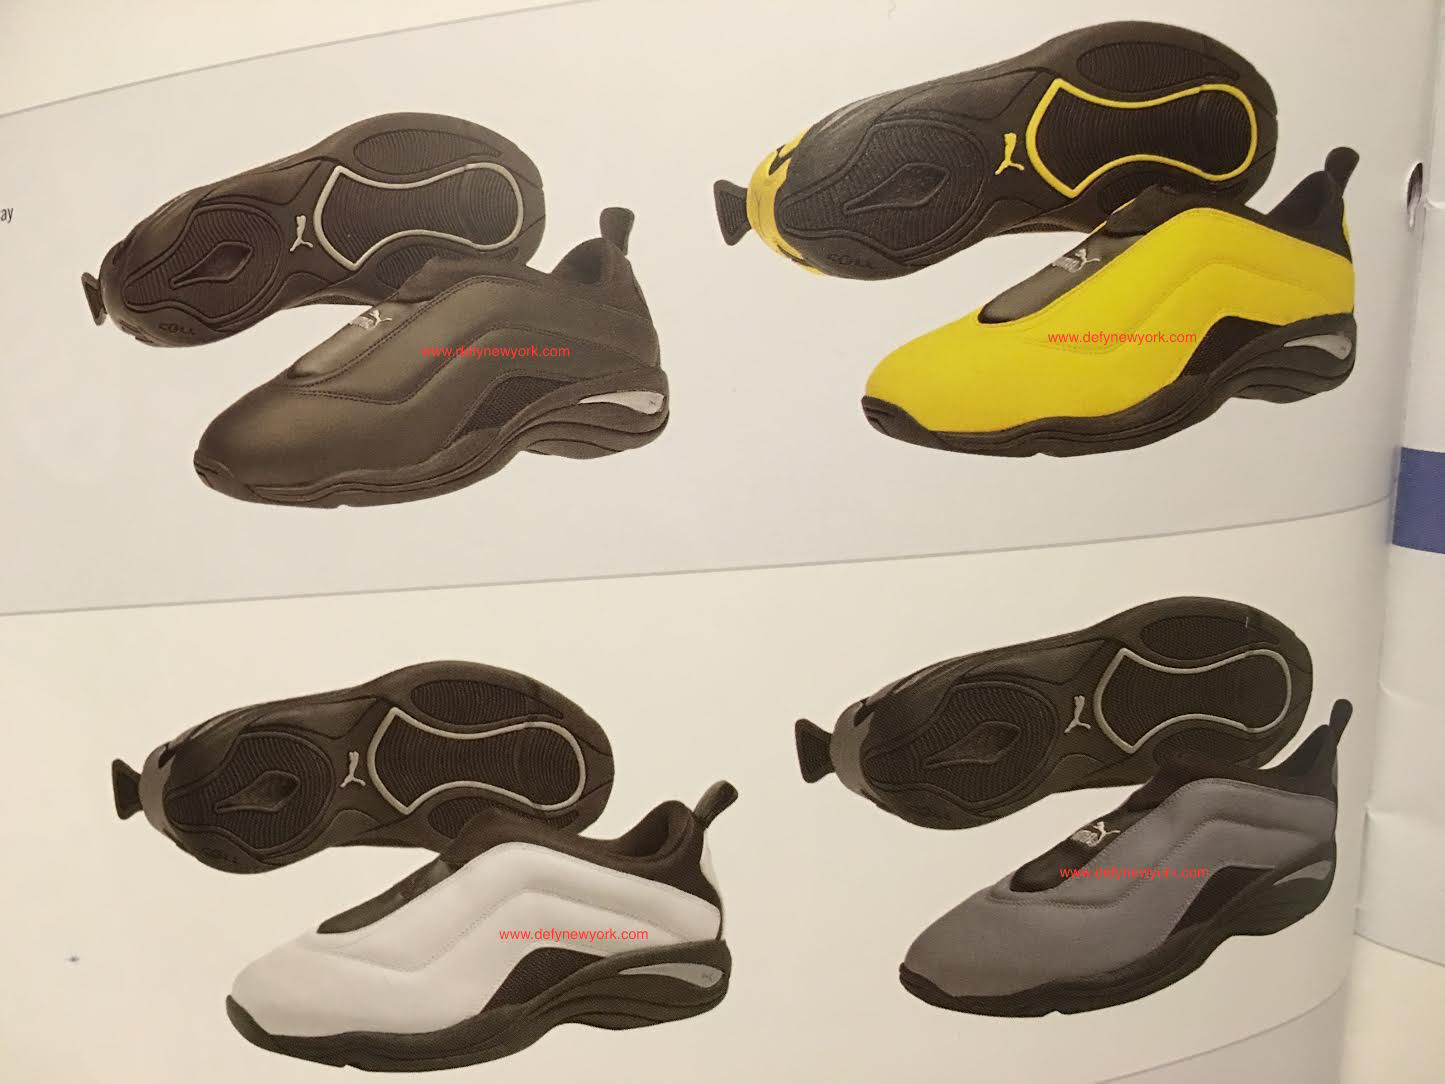 d46d215b569c They may not have been the only company with a slip on tech basketball shoe  but they definitely came correct as far as design